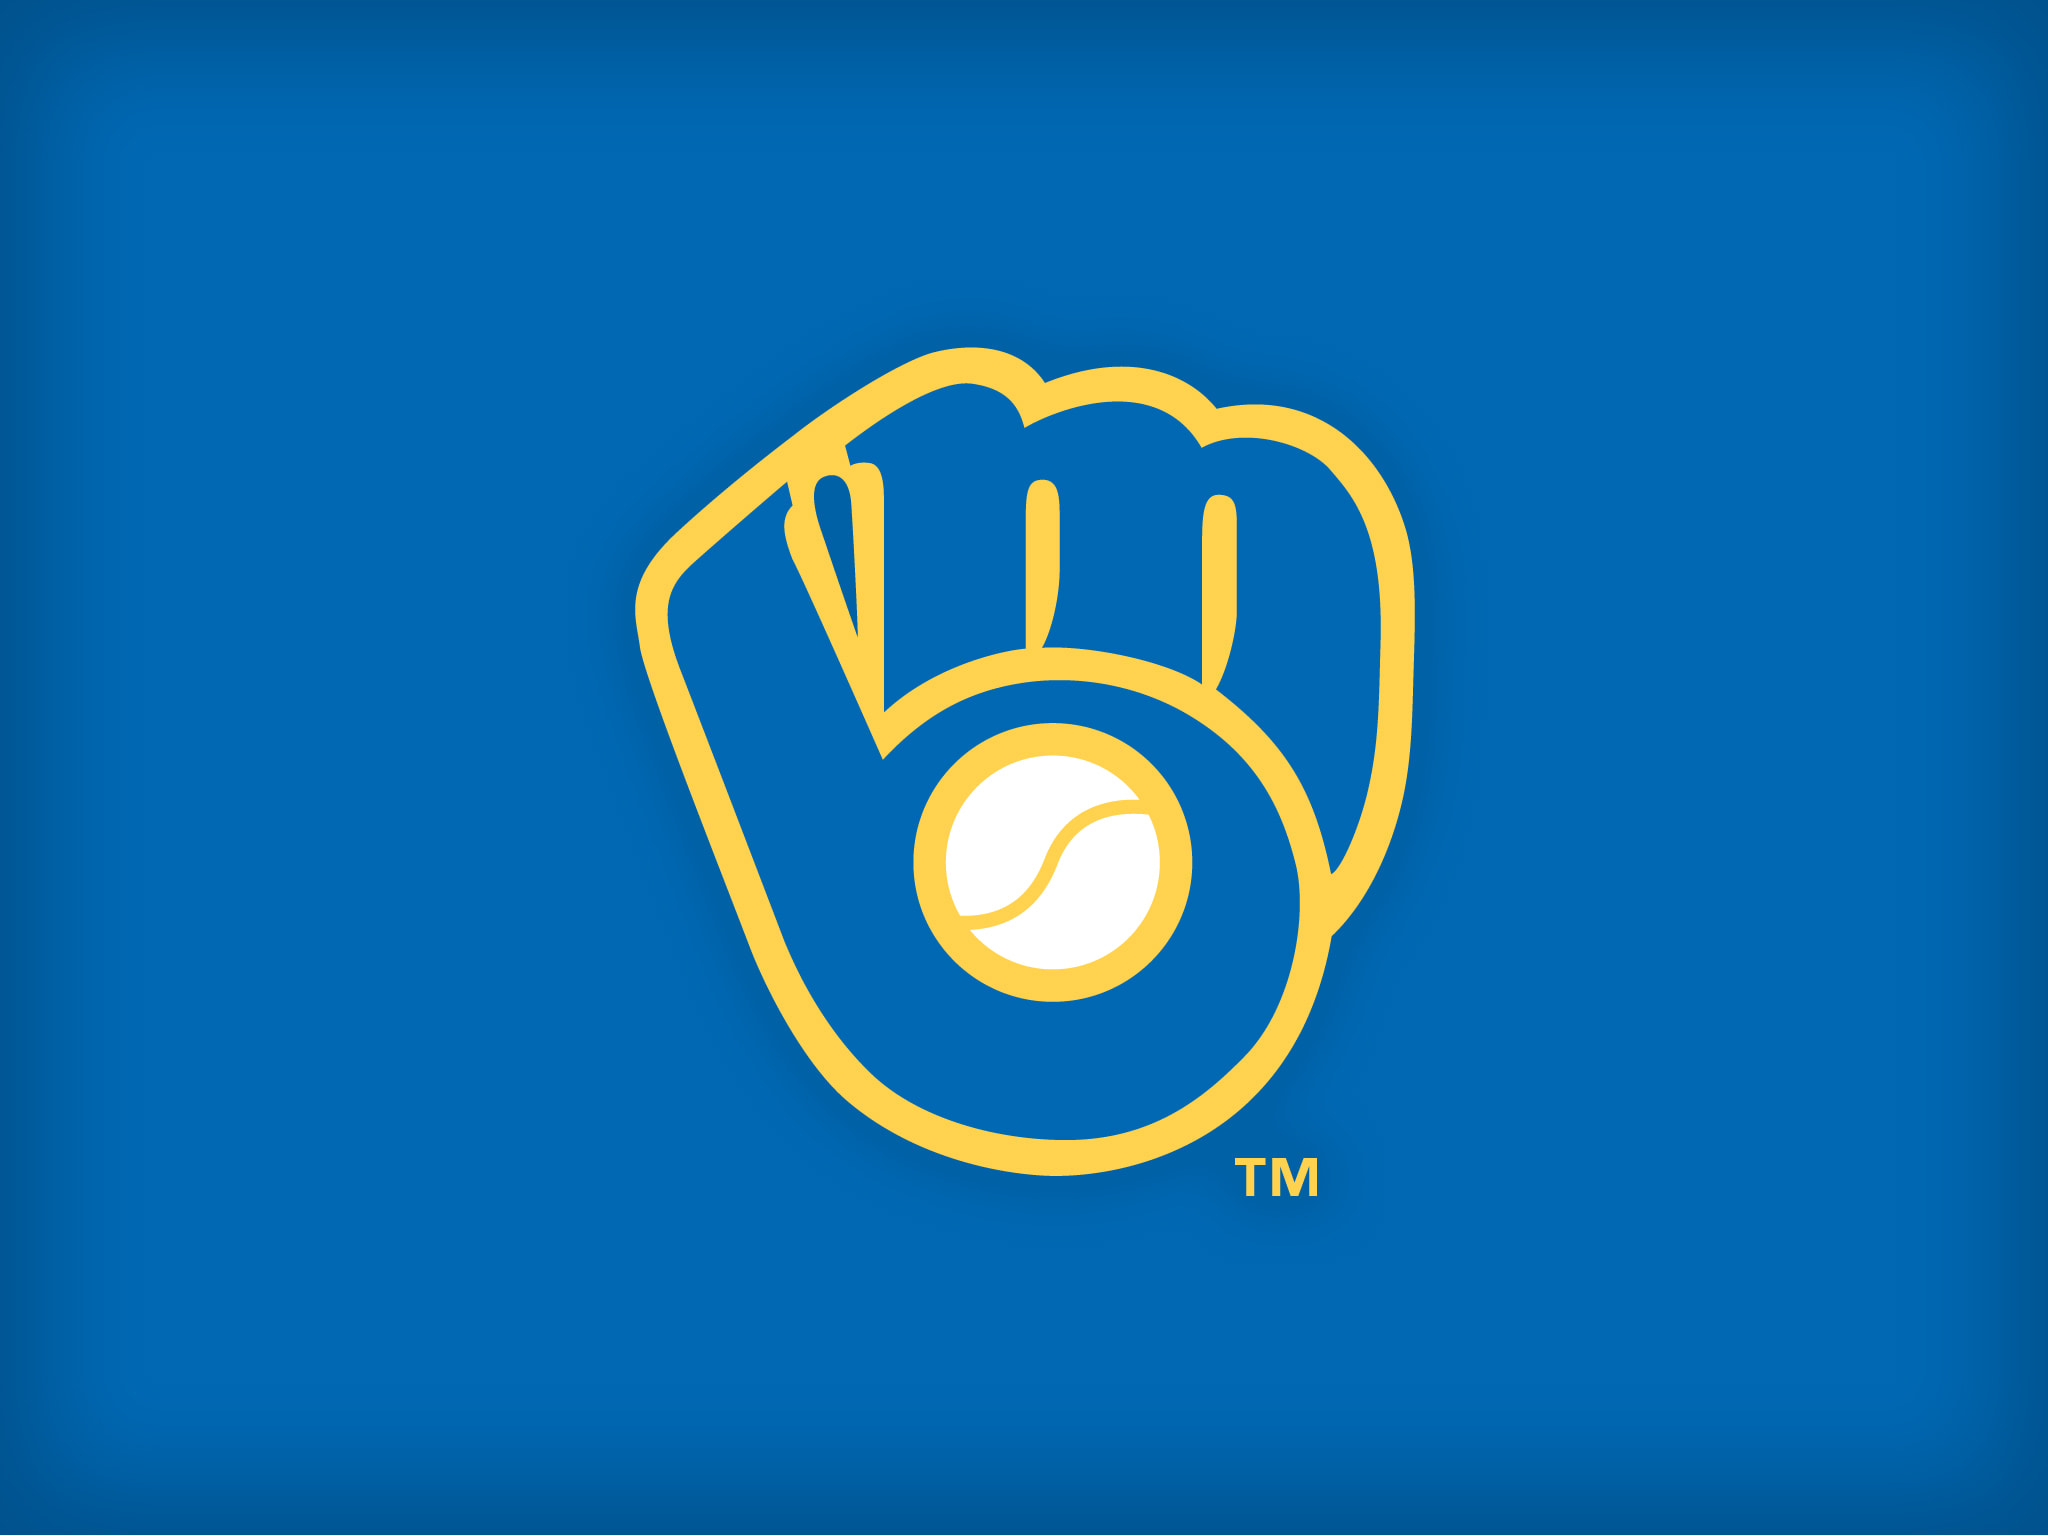 Milwaukee Brewers logo meaning